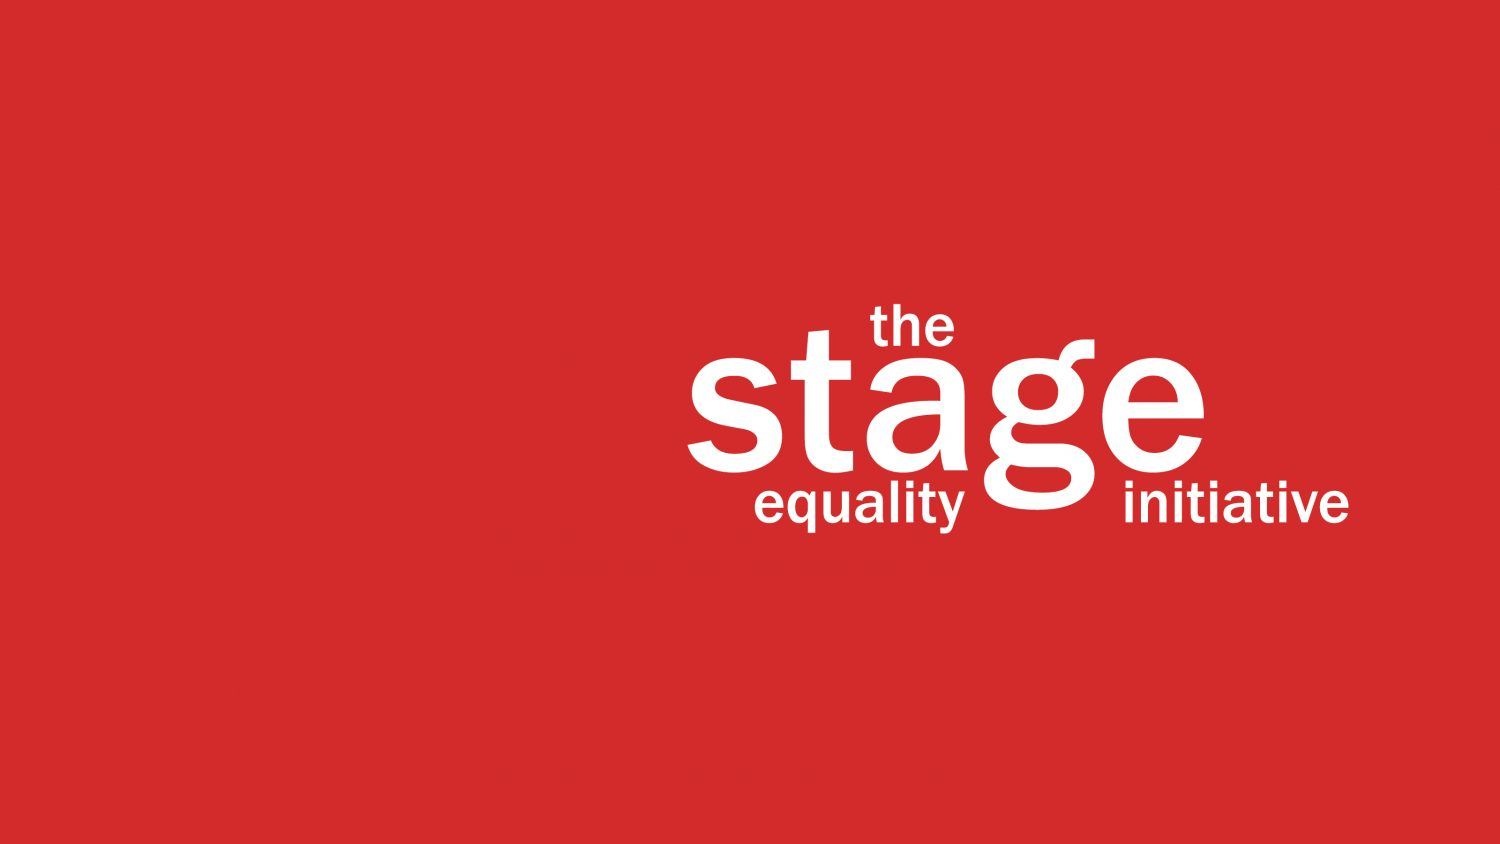 stage-equality-initiative-9x16-web-e1612363657705